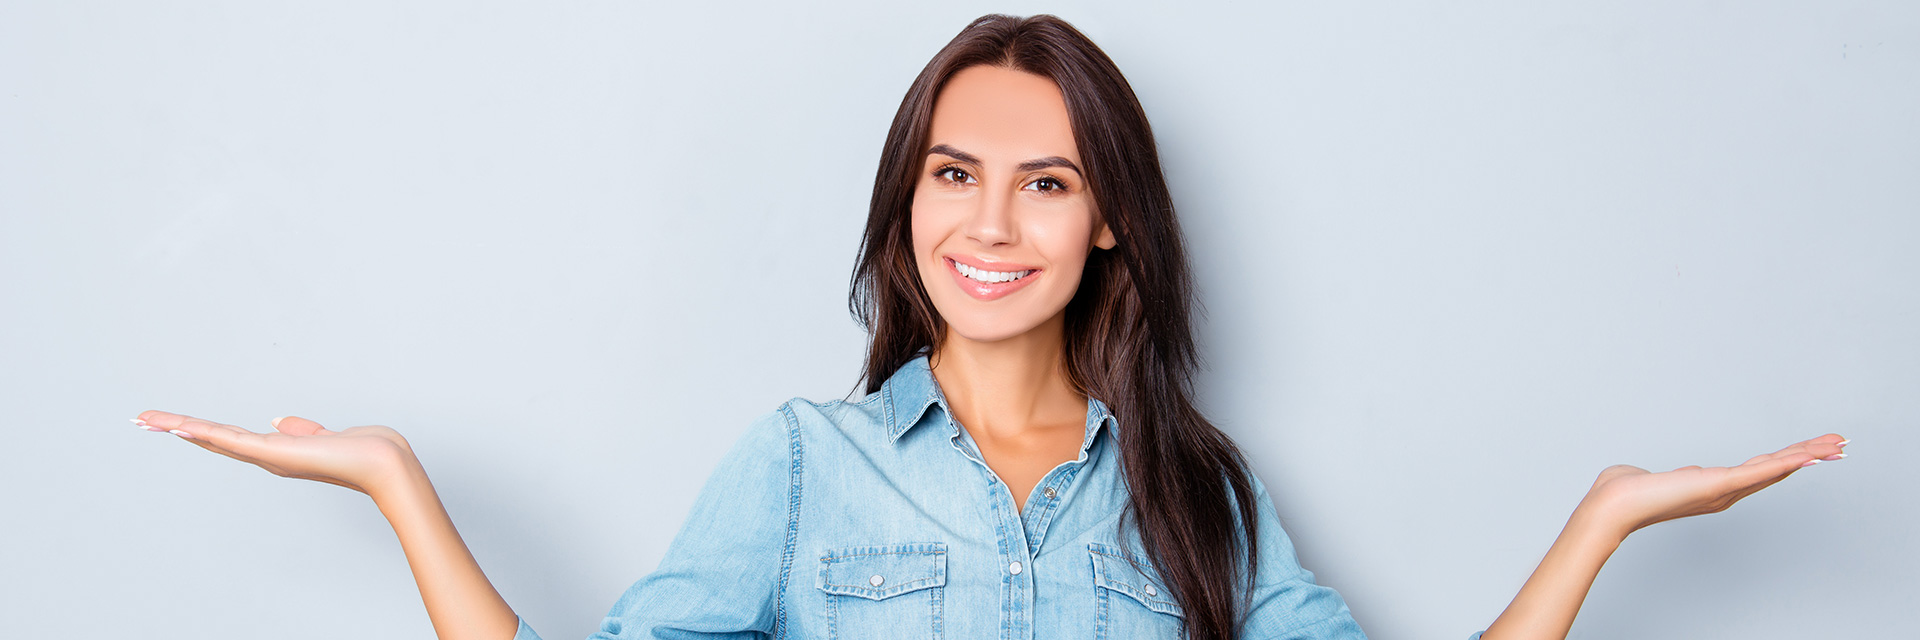 Cosmetic dentistry options with Georgetown area dentist and team